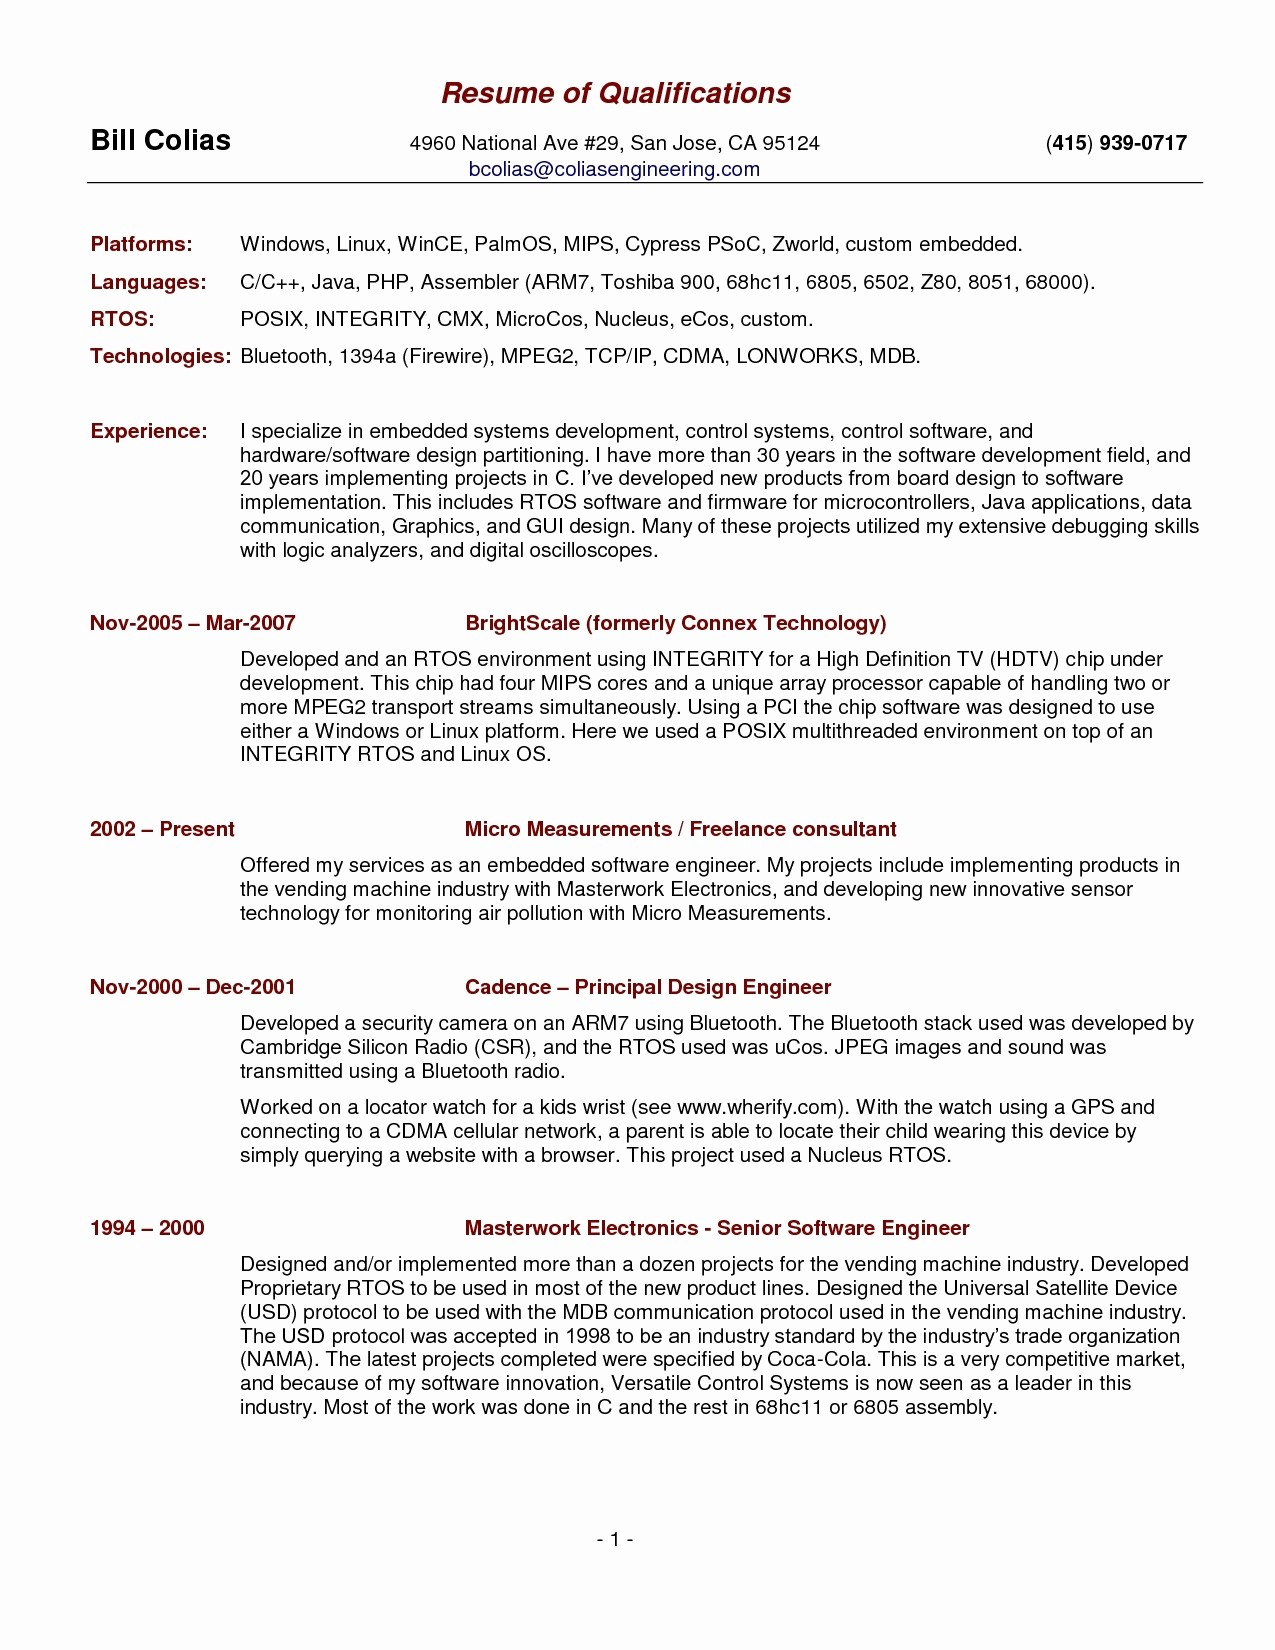 Free Online Resume Template - Download Unique Best Resume Template